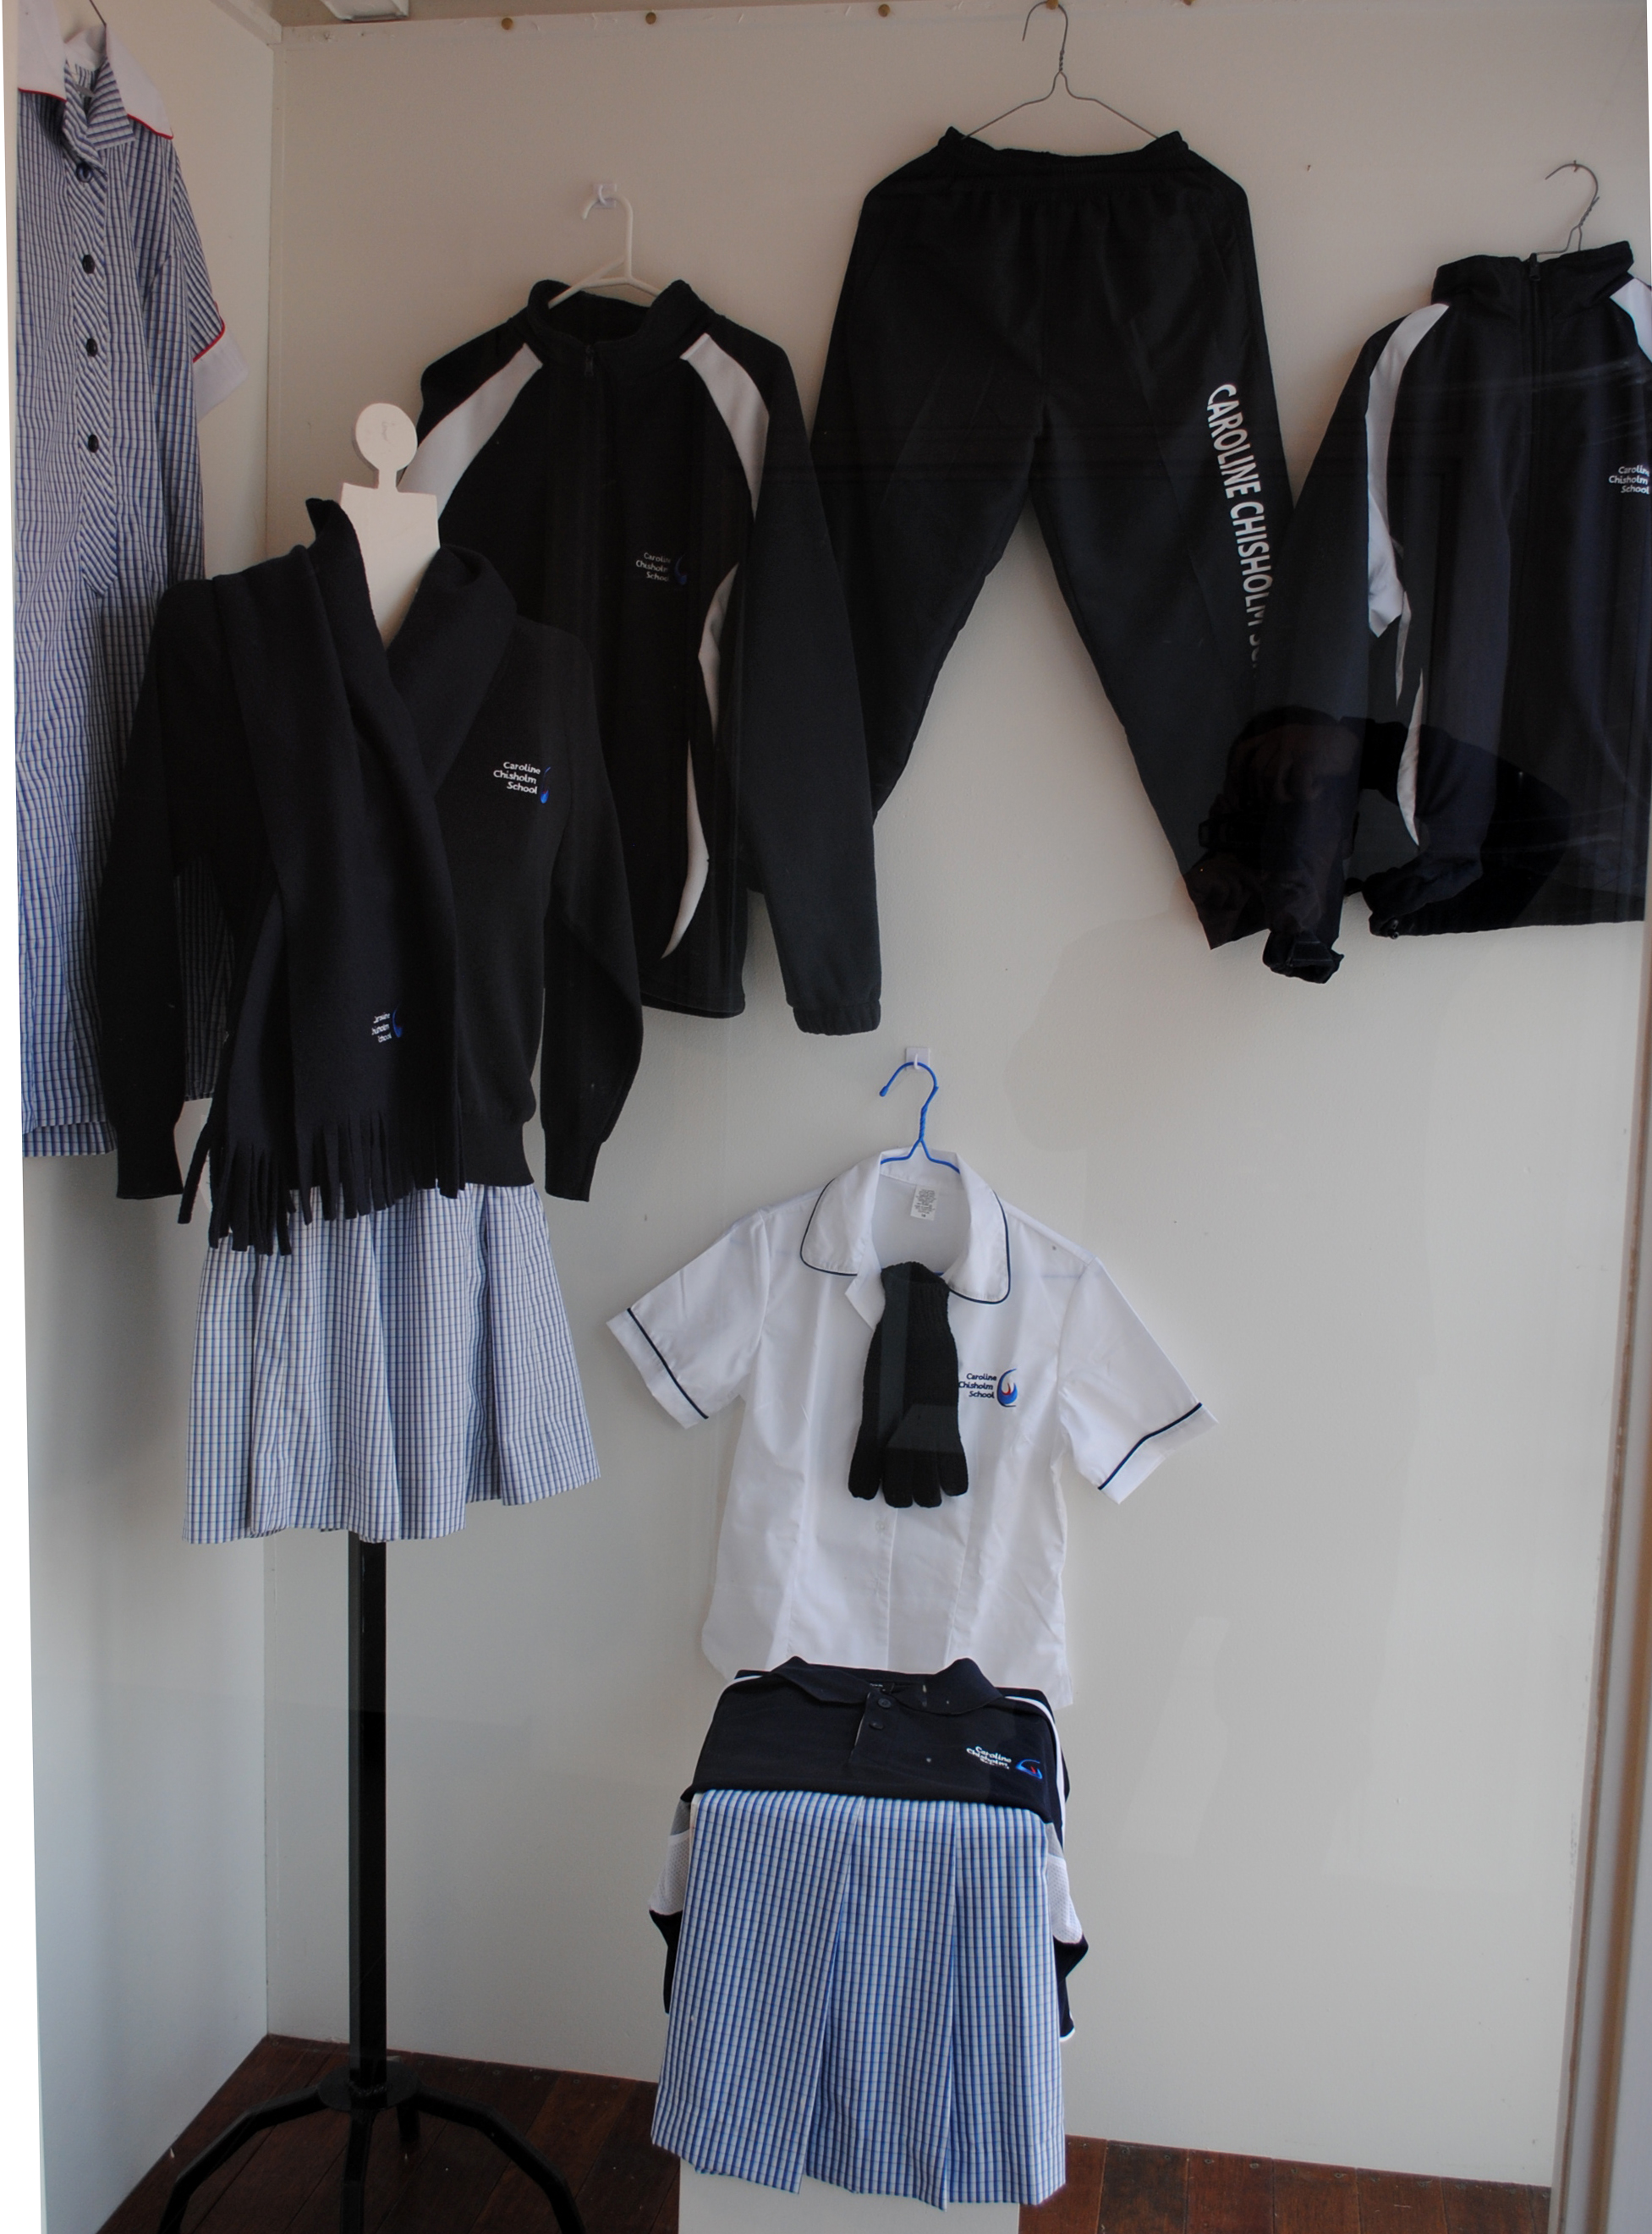 Uniforms for male and female students